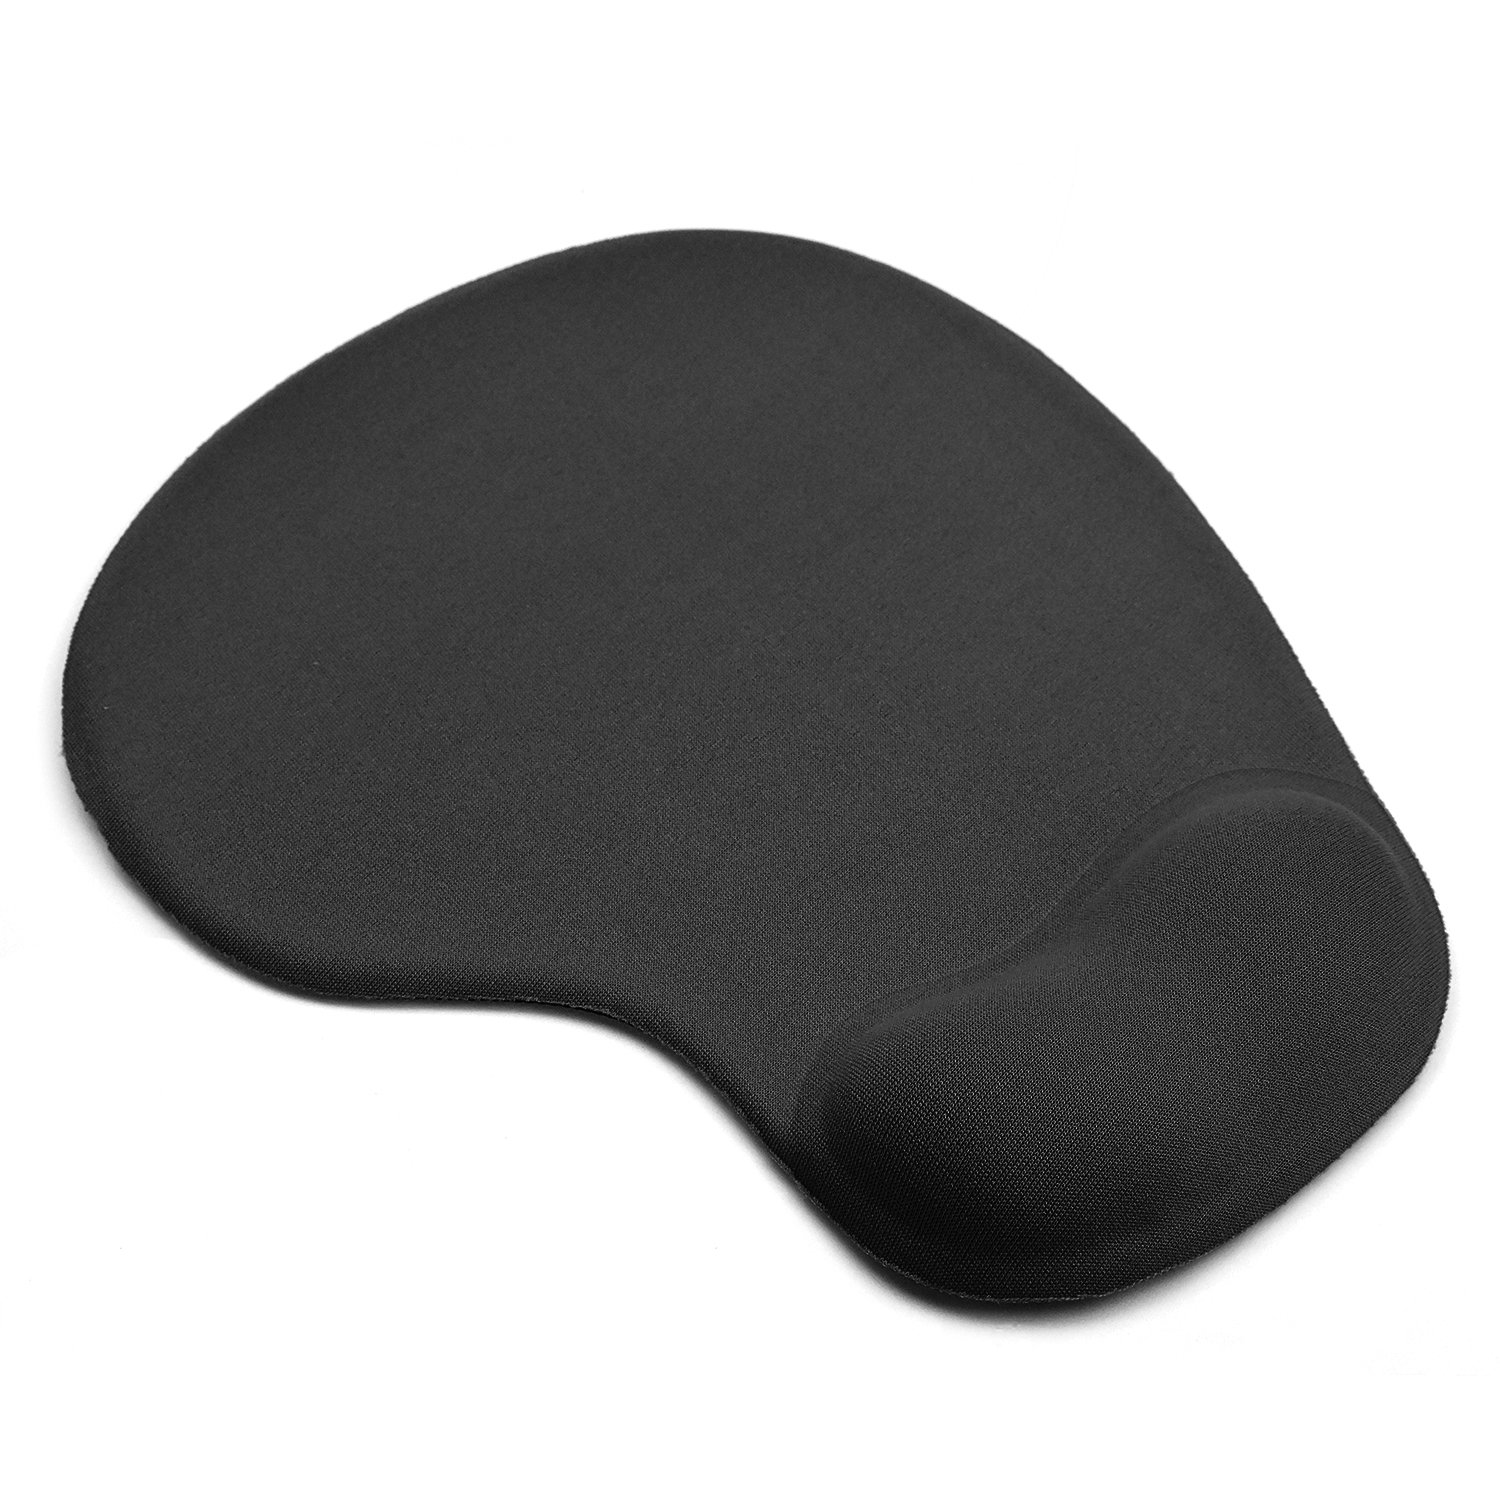 KATUMO Mouse Pad with Wrist Support Anti Slip Rubber base Foam Rest Wrist Support Mouse Mat with Gel Rest for Laptop PC Black